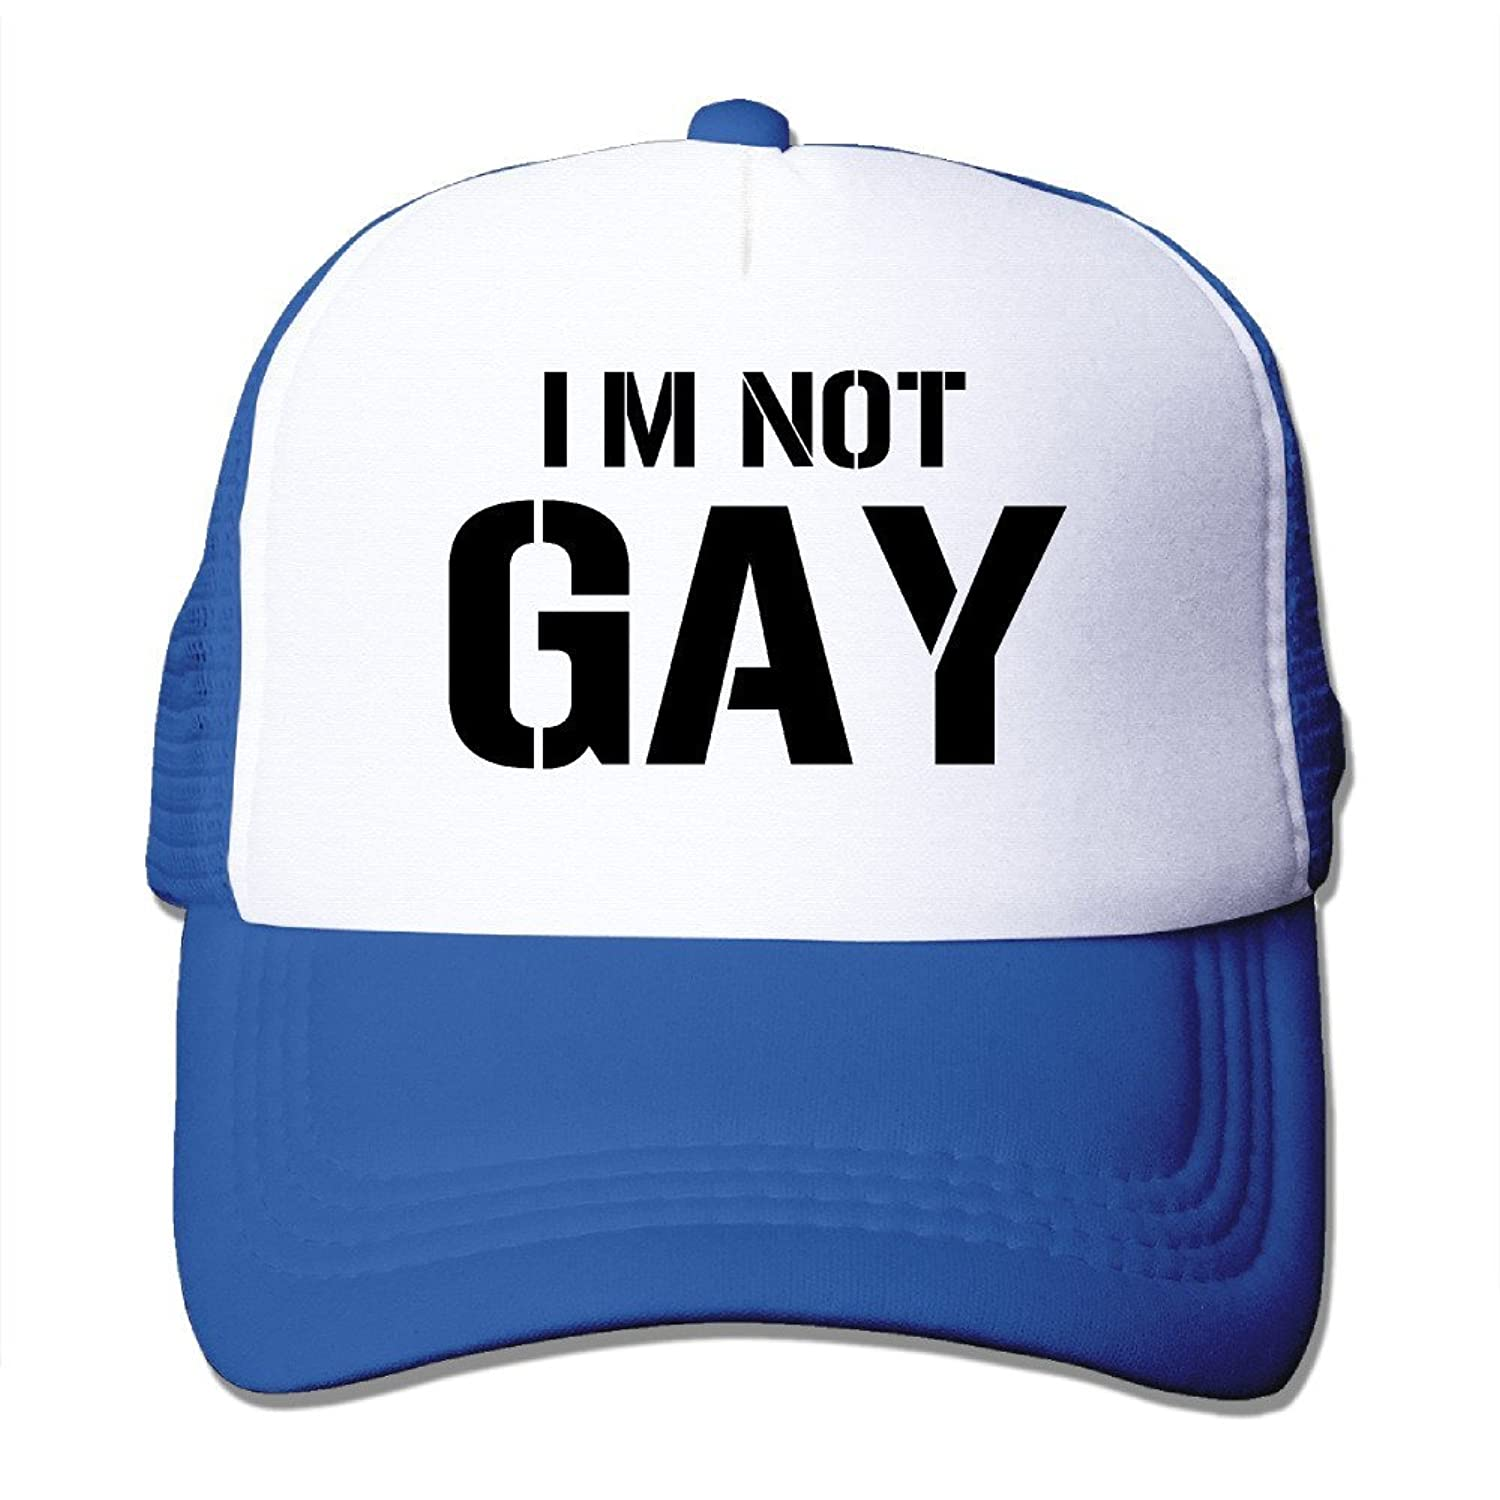 Texhood I'm Not Gay Fashion Cap Hat One Size Black